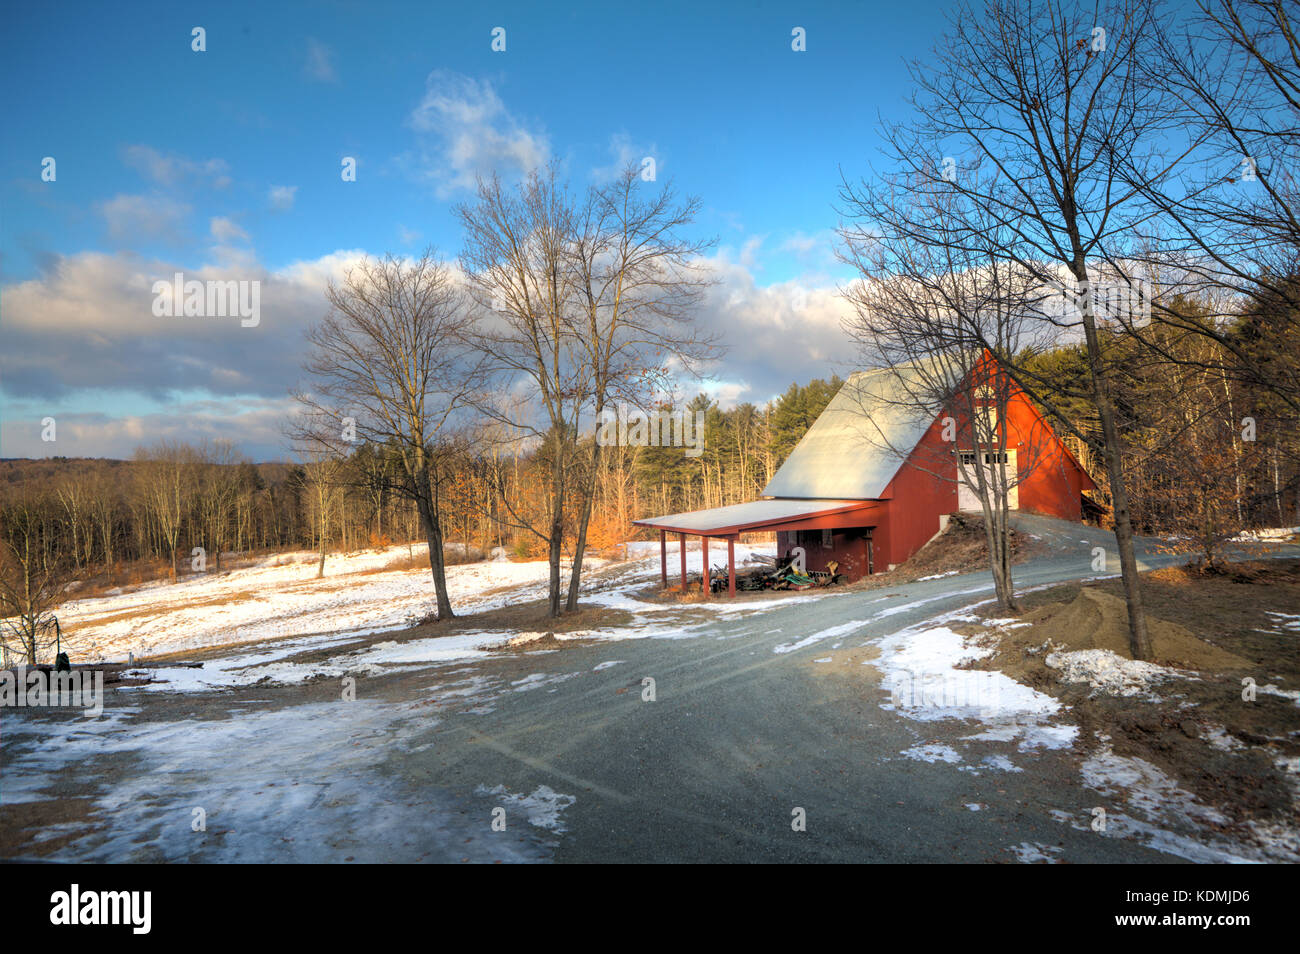 Red Horse Barn In Winter With Snow On The Ground In Hartland Vt Stock Photo Alamy